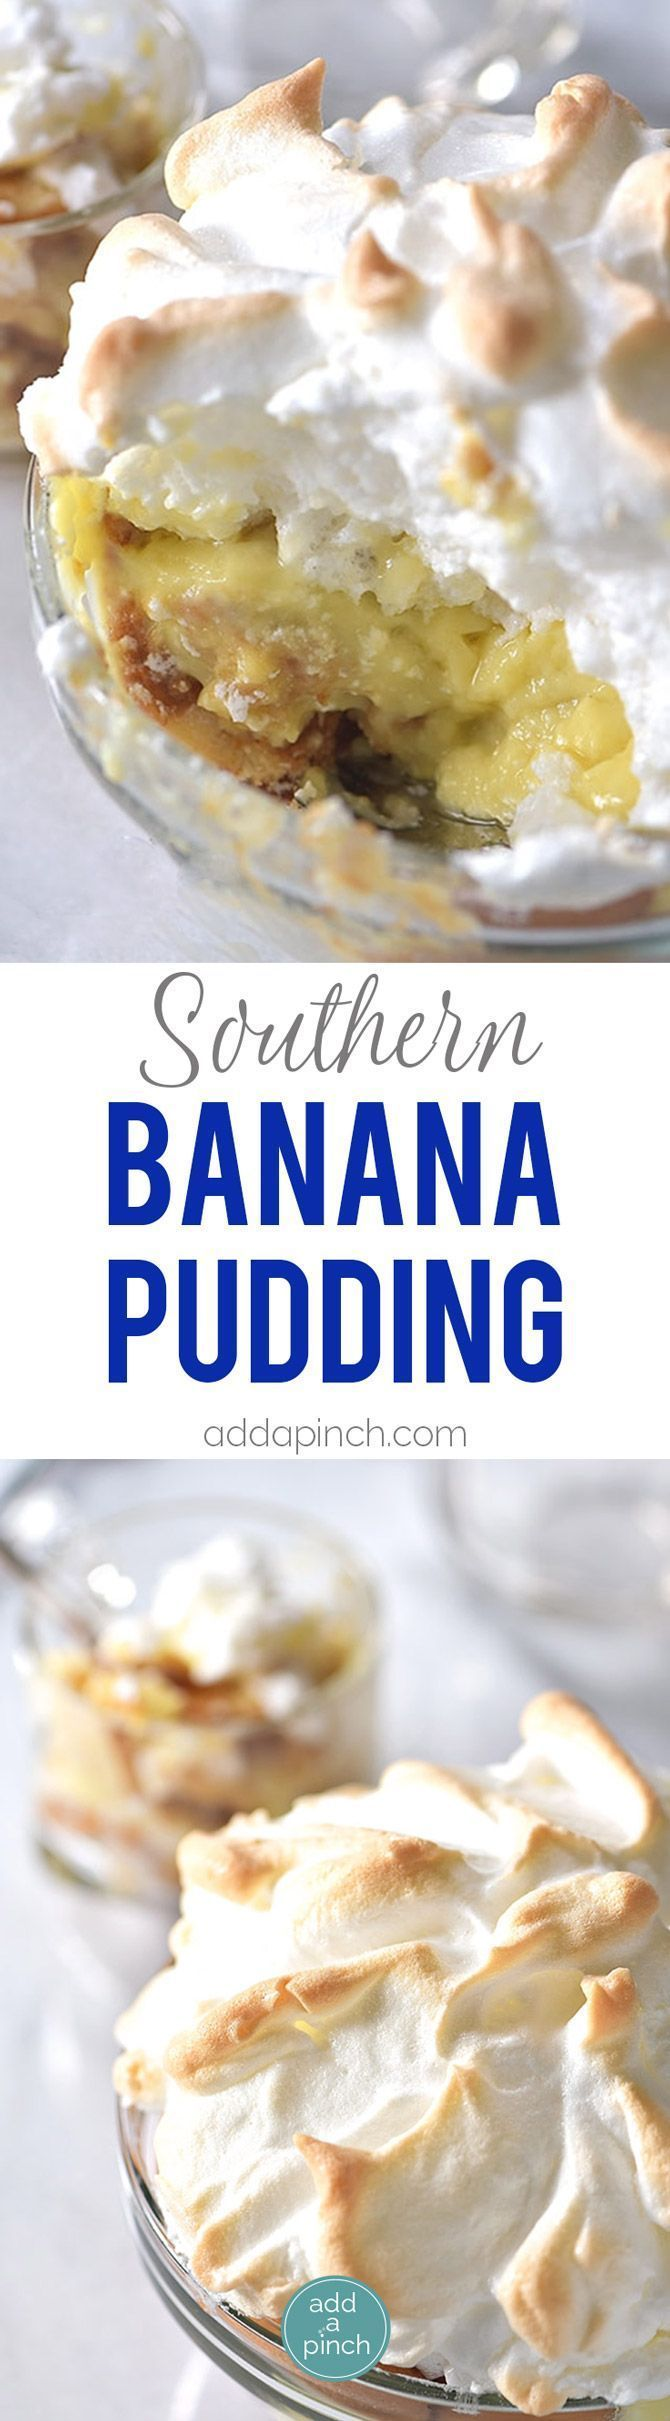 Southern Banana Pudding Recipe - This banana pudding recipe makes a classic, Southern dessert. An heirloom family recipe, this homemade banana pudding is an essential part of so many holidays and celebrations! // http://addapinch.com